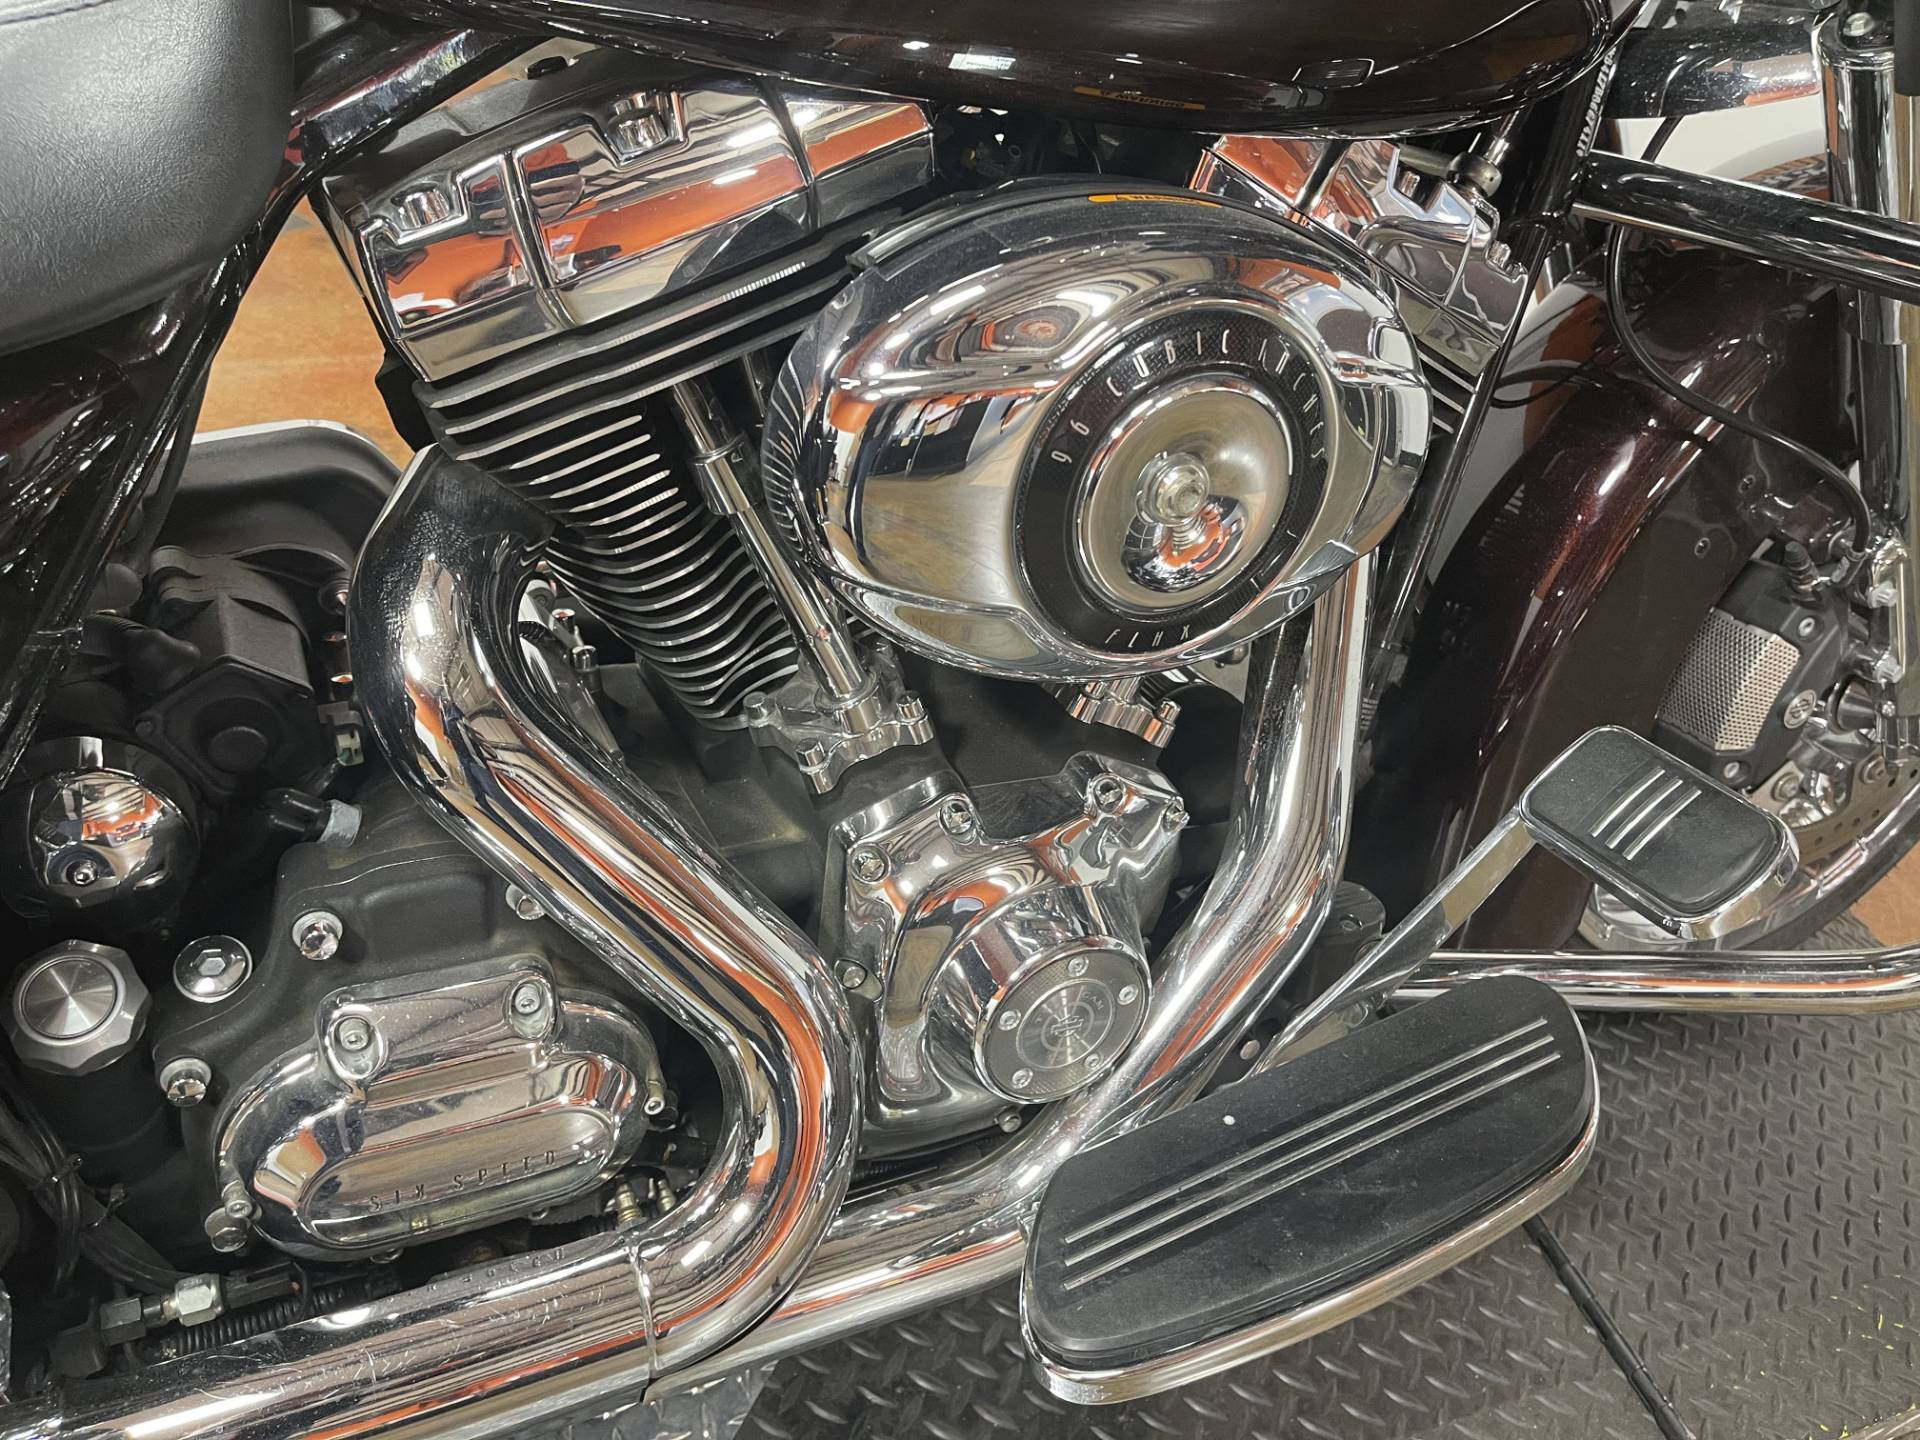 2011 Harley-Davidson Street Glide® in Marion, Illinois - Photo 11